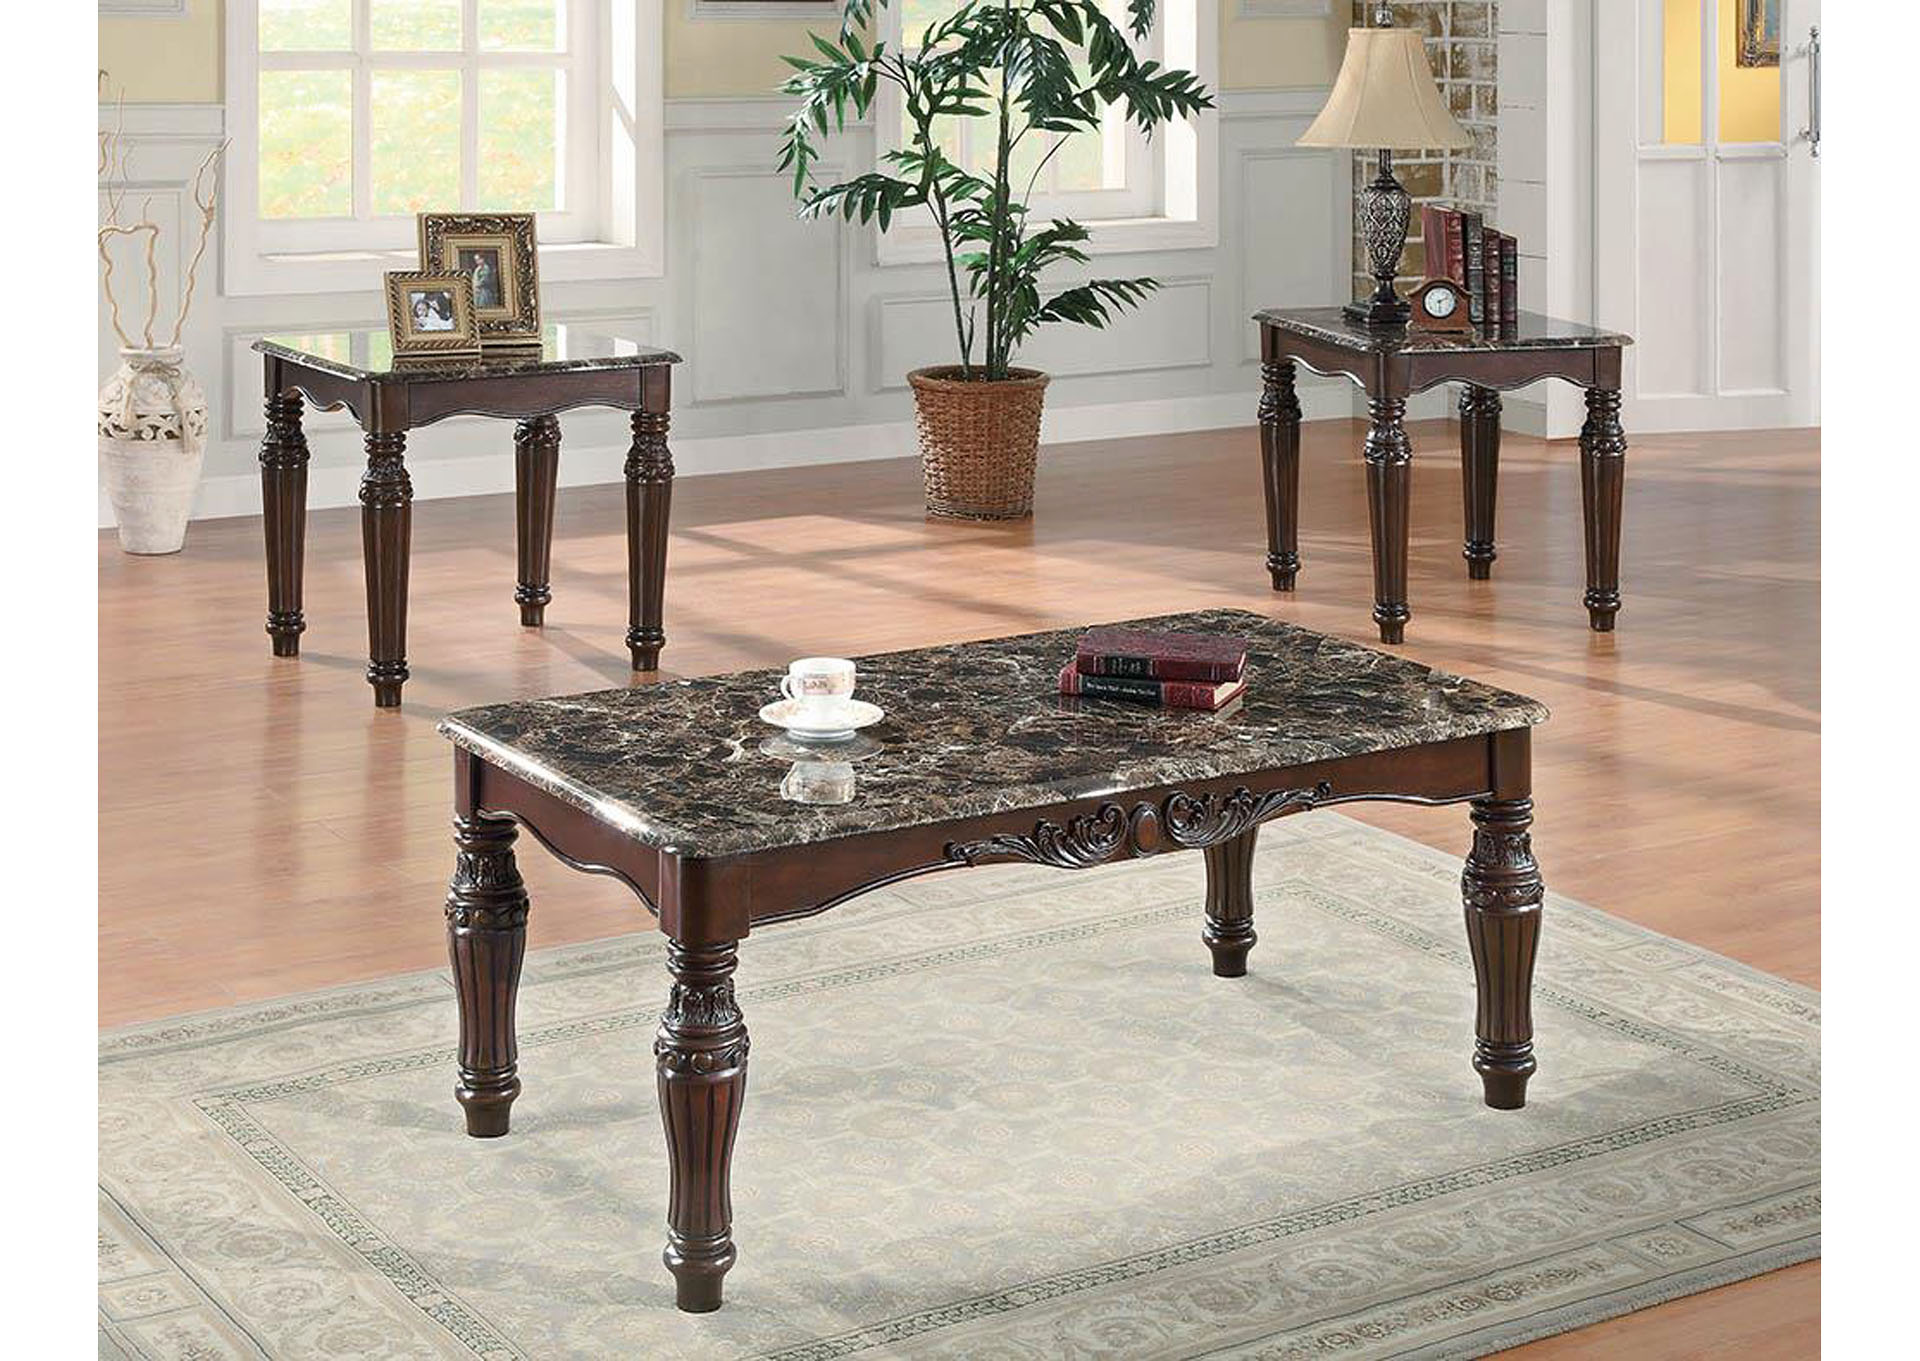 3 Piece Occasional Table Set,Coaster Furniture